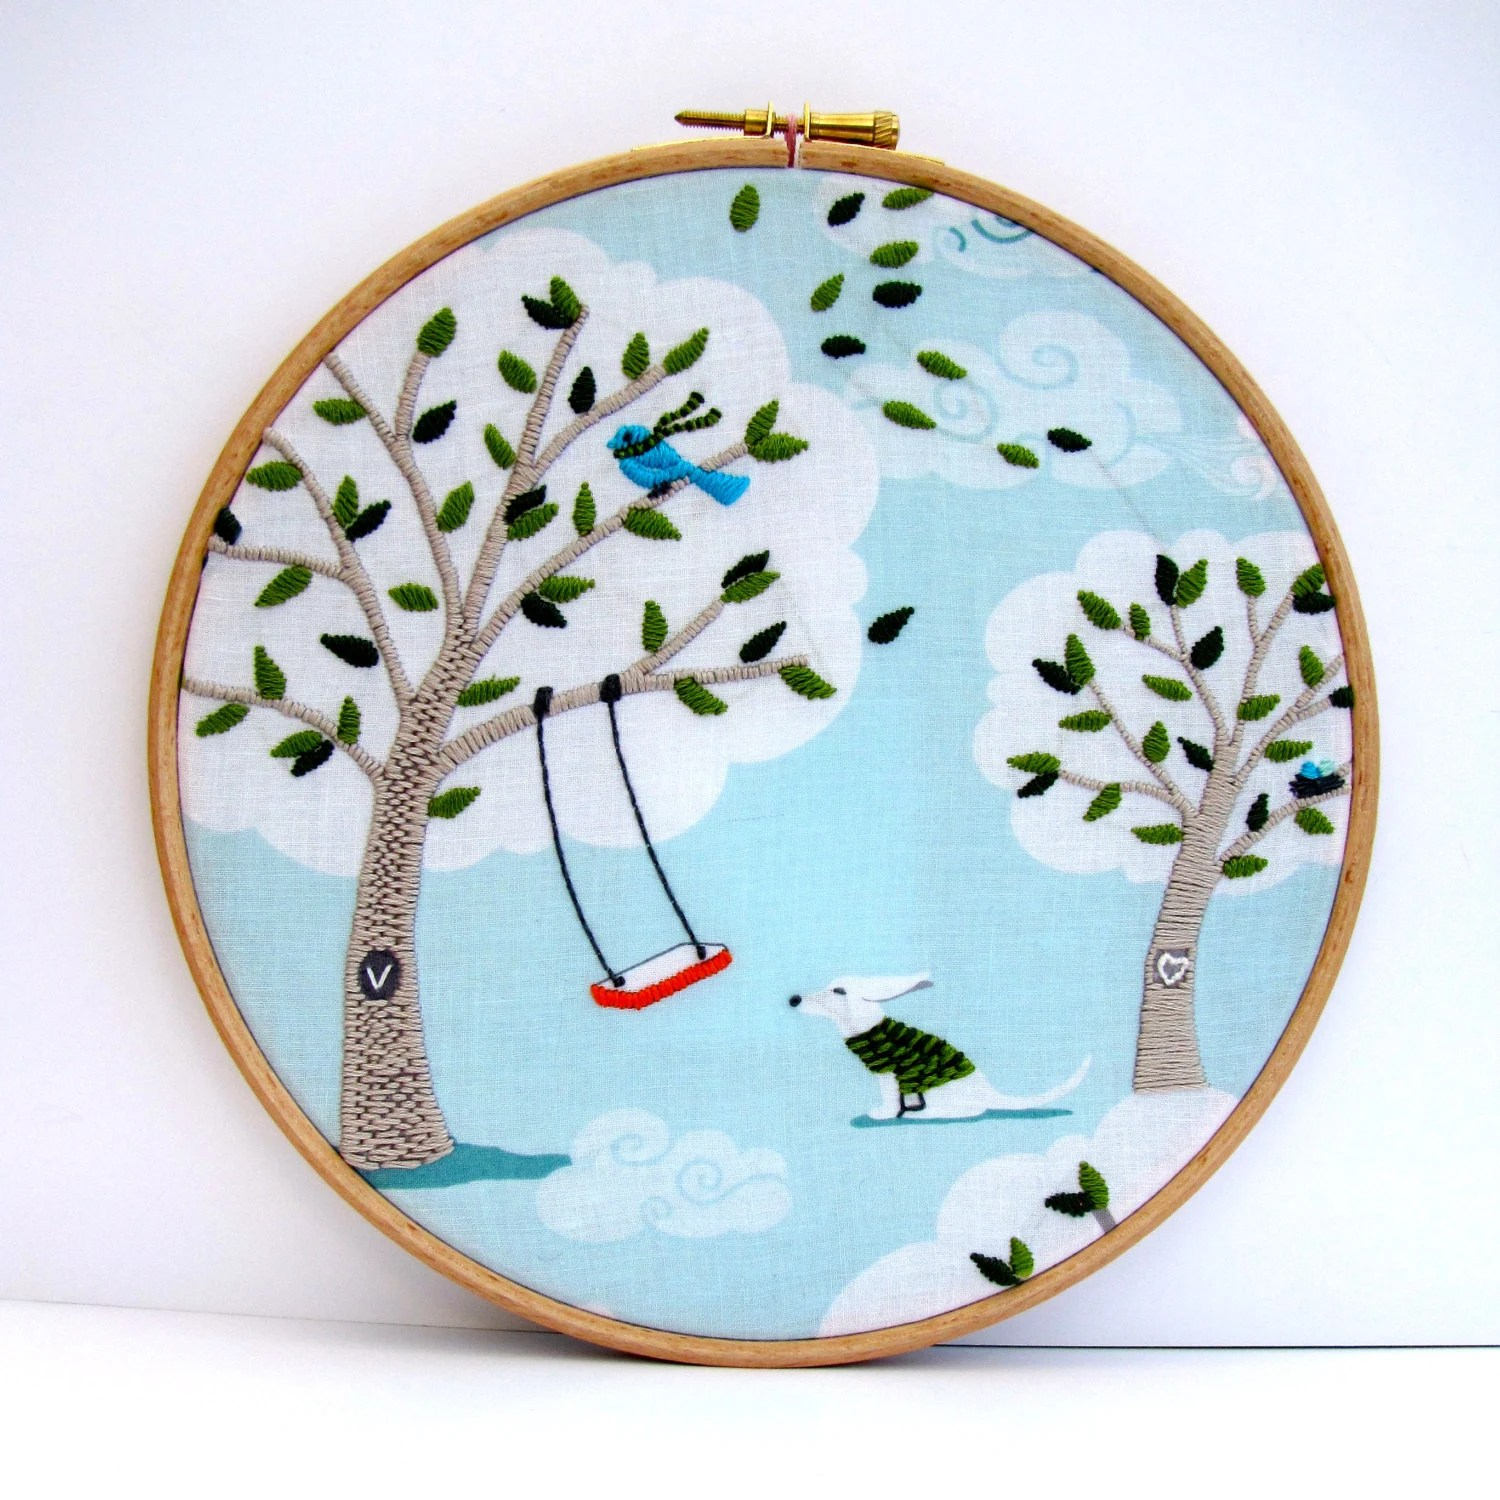 Hand Stitched Embroidery Picture.  Hoop Art. Aqua & Green with Swing and Dog. Personalise. Windy Day 8 x 8 inch.  by mirrymirry - mirrymirry